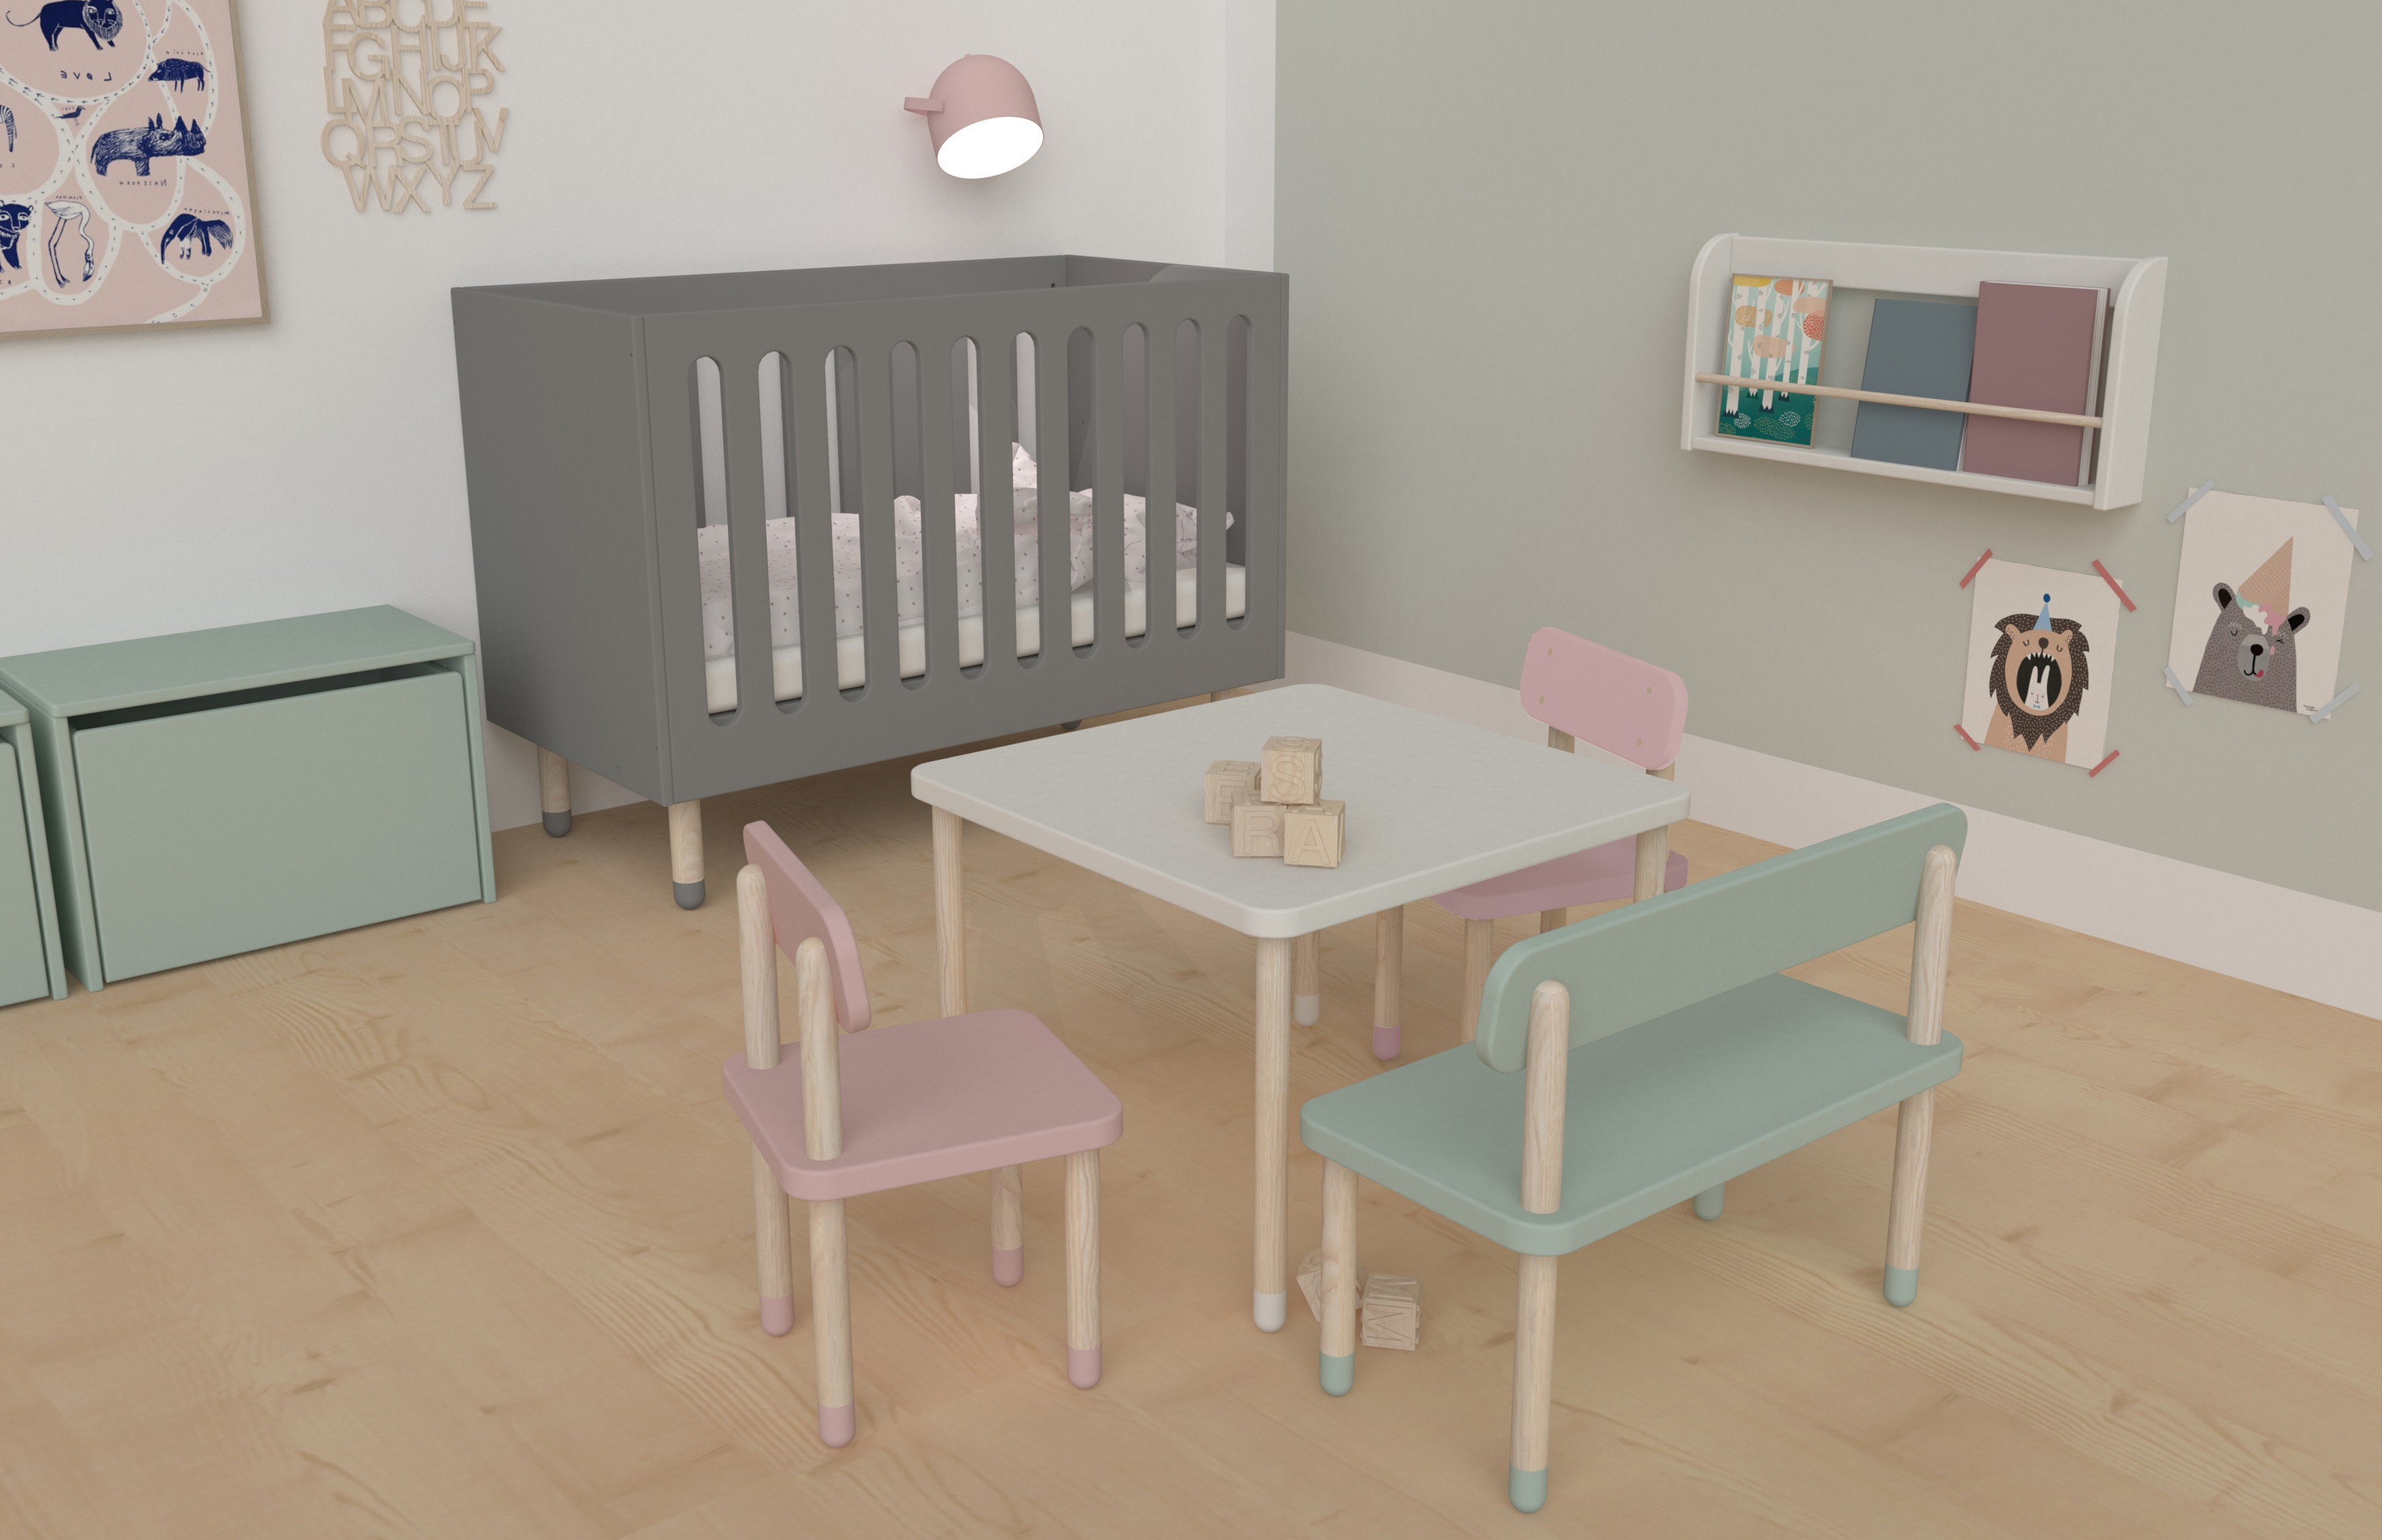 kinderbett play von flexa grau m bel letz ihr online shop. Black Bedroom Furniture Sets. Home Design Ideas